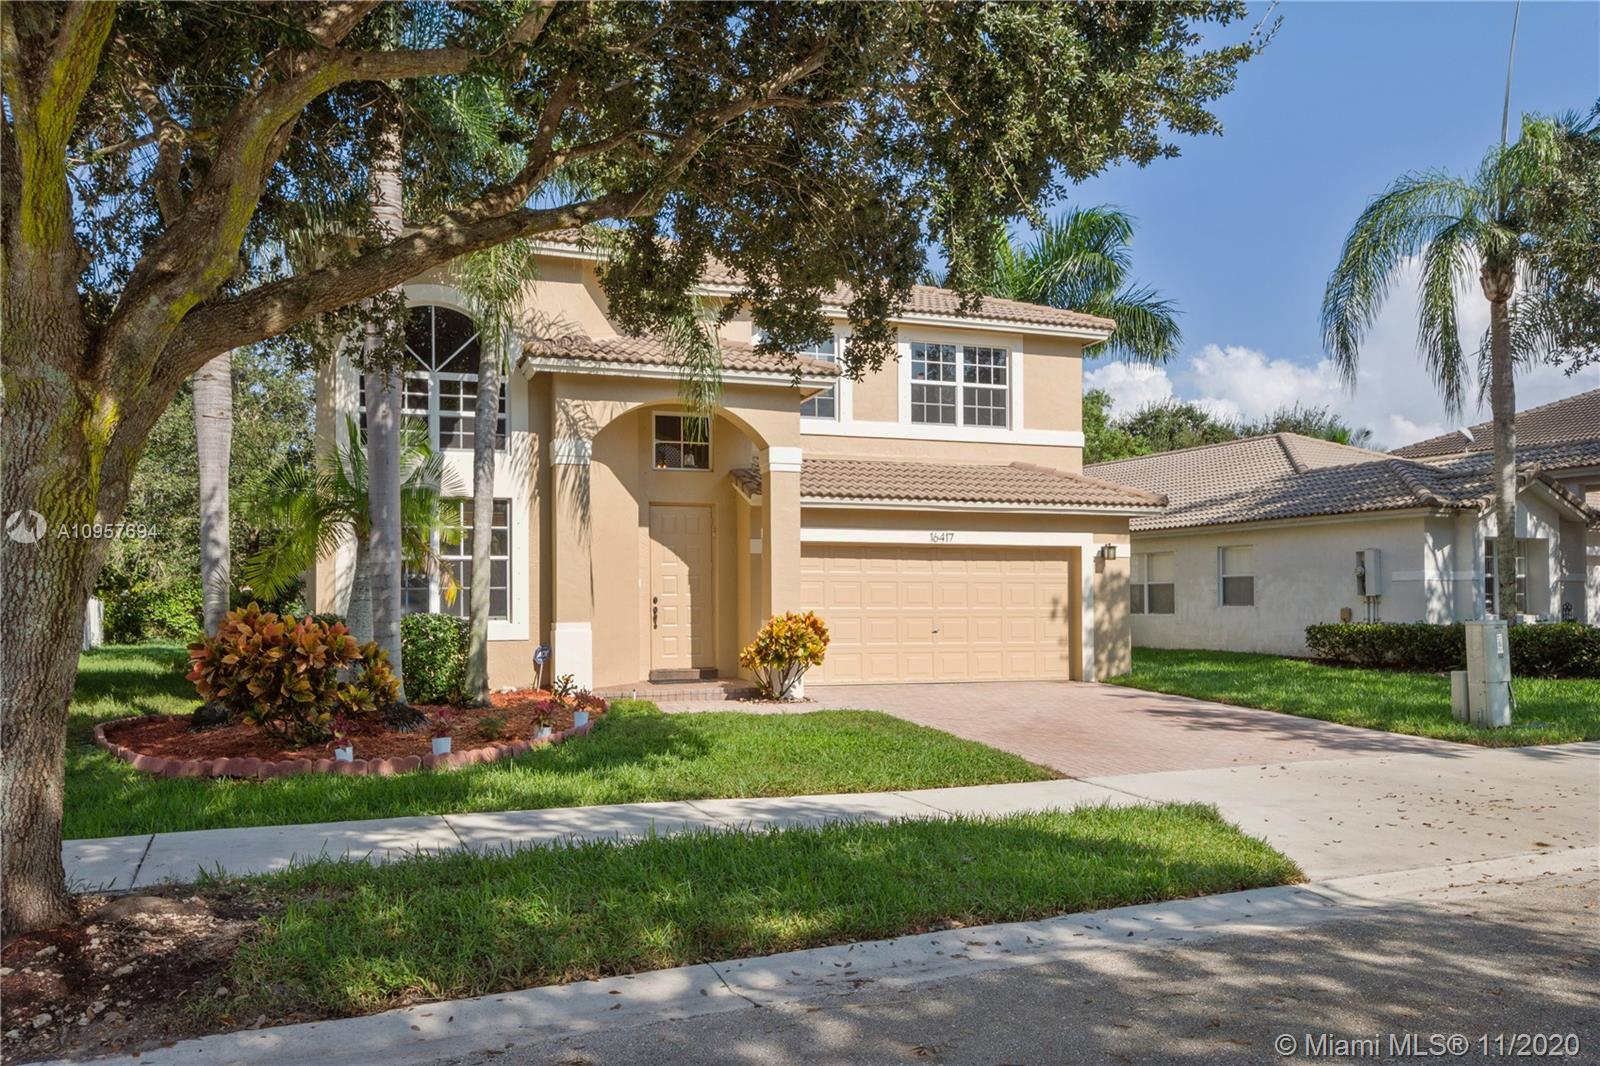 Just listed in the prestigiouscommunity of Emerald Estates. Built by Lennar with great parks and amenities and A+ school district. Peaceful 24hr guard-gated in the amazing City of Weston. This is the Jade Model with an open floor plan featuring 2812Sqft A/C with 4 bd, 3 bth & large loft, 2 car garages. The 1st-floor bedroom is perfect for guests/office and loft is versatile. New impact windows on 2nd floor and hurricane panels for 1st floor. Recently renovated master bathroom,painted inside & outside, including garage floor, renovated white kitchen, newer appliances, & granite countertops.Laminate flooring on stairs and second floor. Newer water heater. Private lot and stunning garden views. HOA includes lawn maintenance, fertilizing, tree trimming, weeding, sprinklers, cable& much more